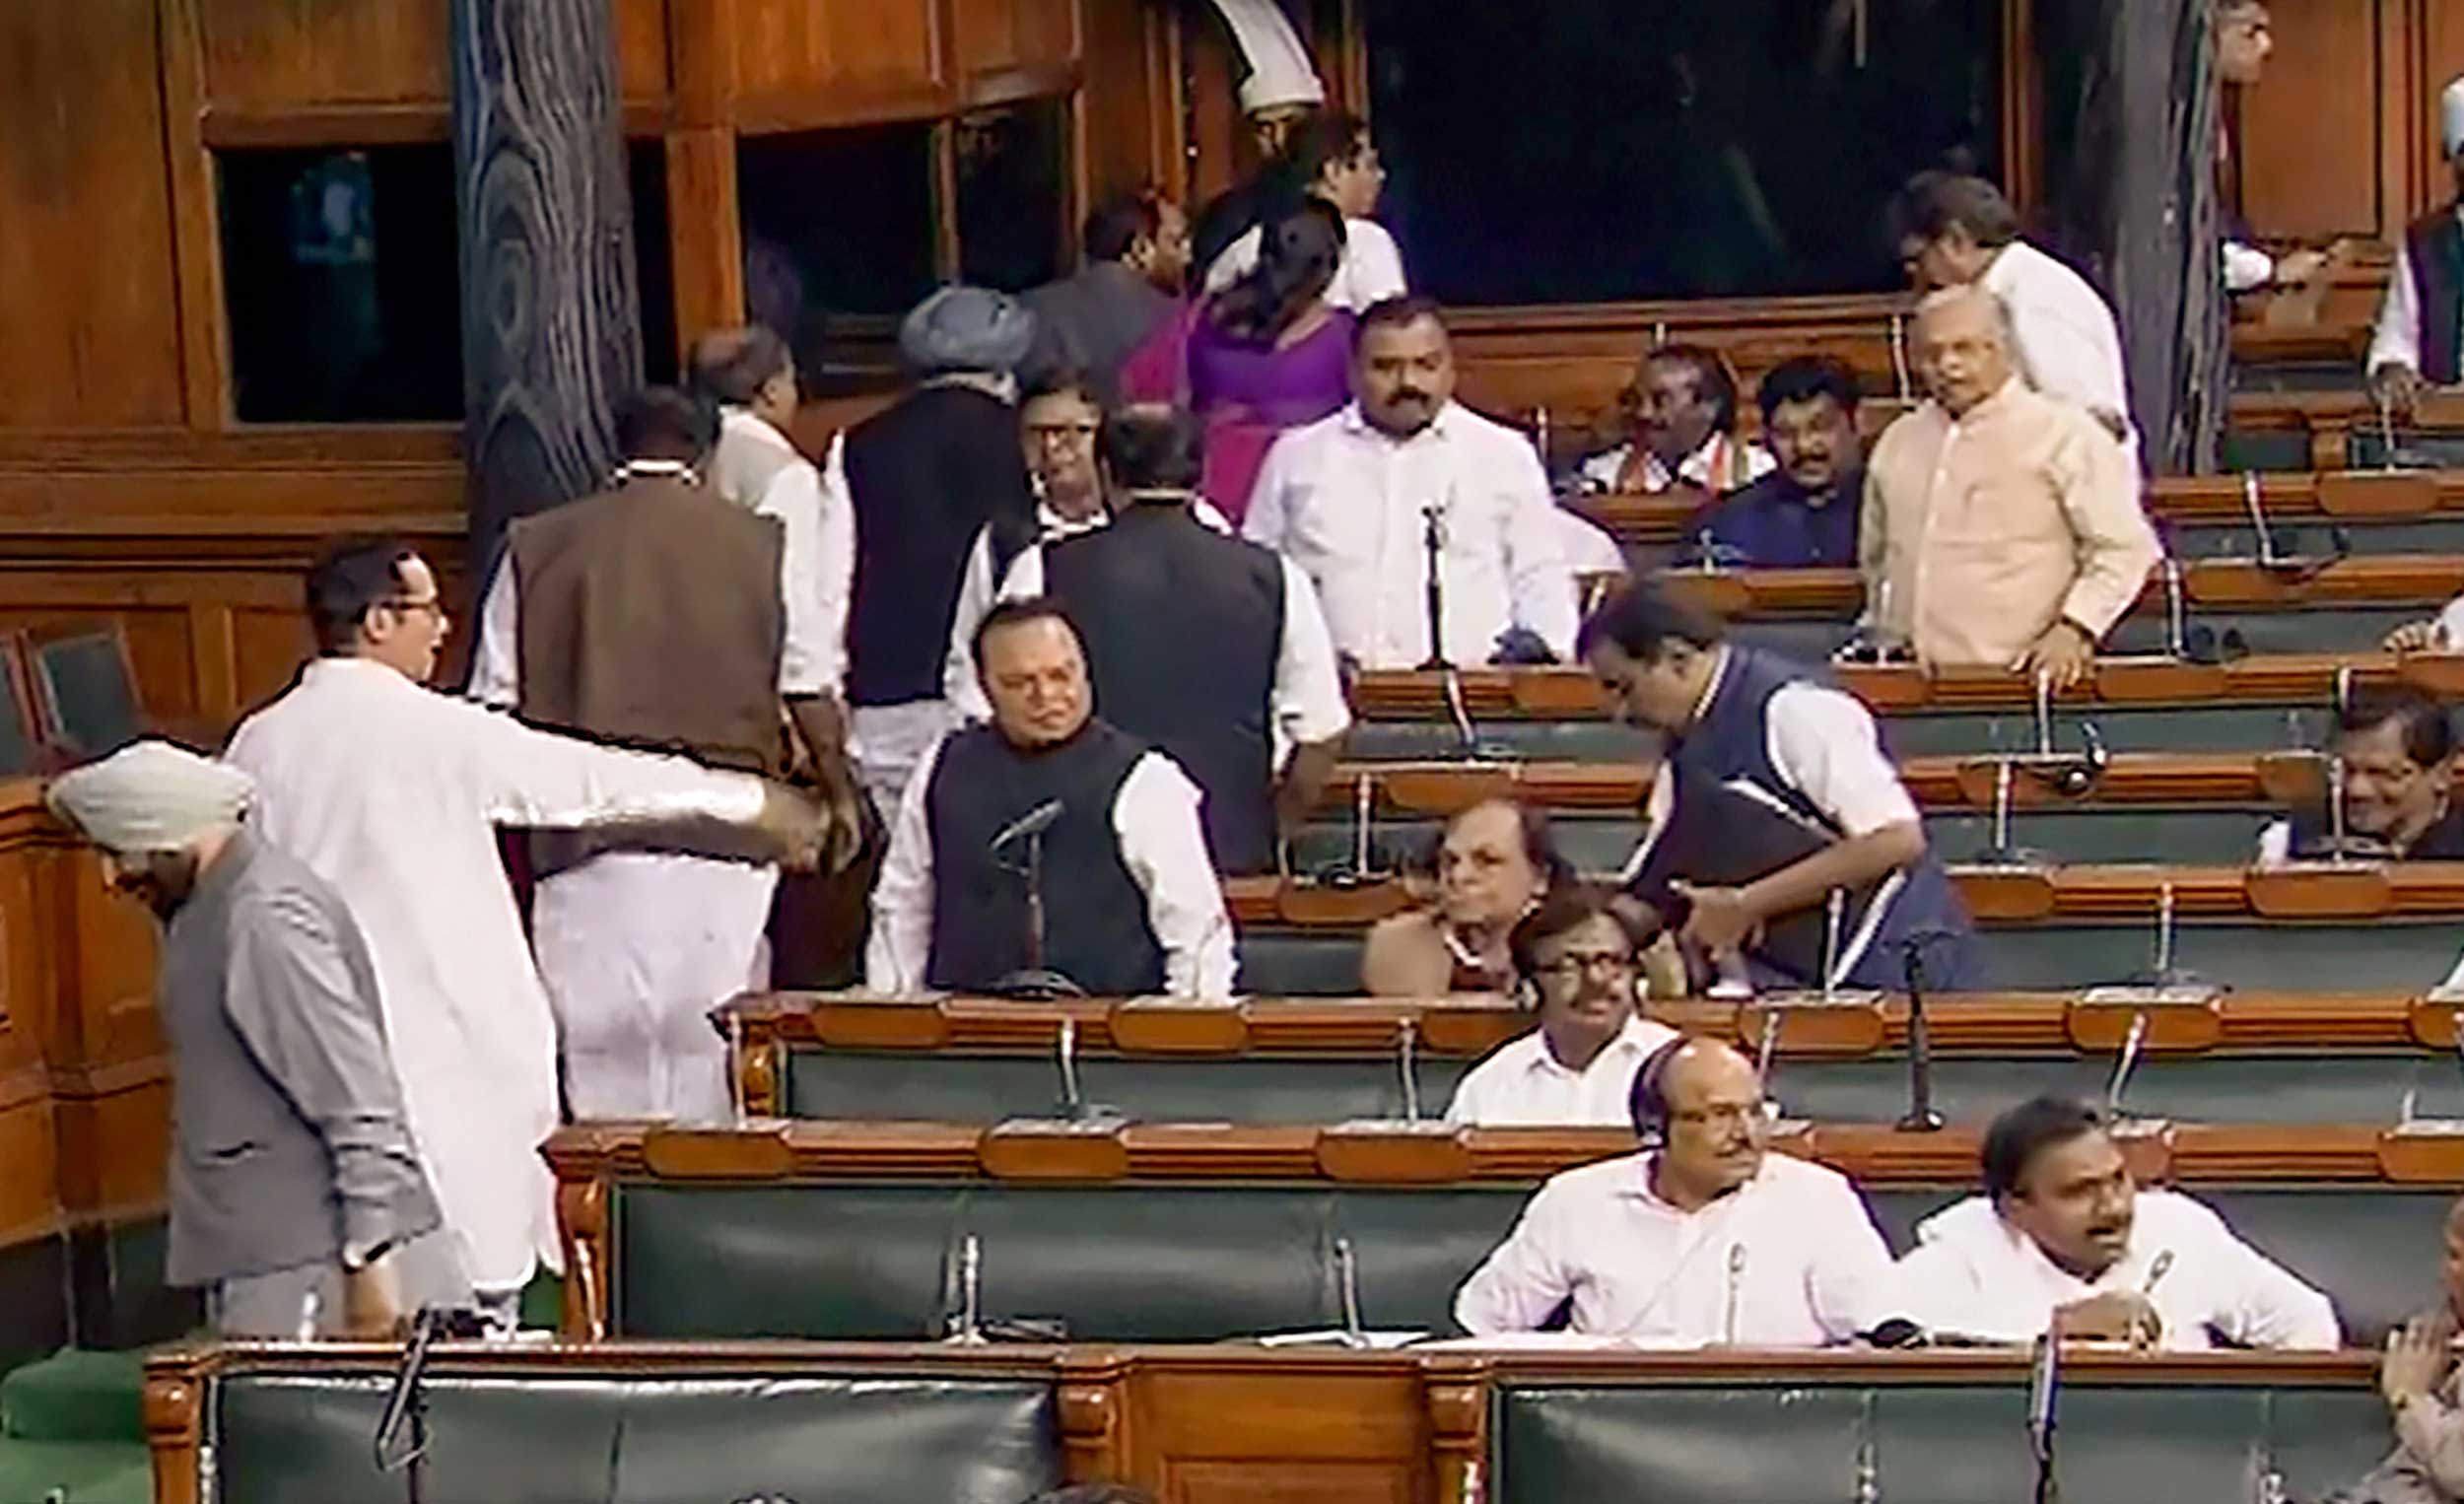 Congress and IUML party MPs walkout from the Lok Sabha in New Delhi on Wednesday. When the Delhi riots were being discussed in Parliament, the Sena did not join the Congress and other Opposition parties in pinning responsibility on Union home minister Amit Shah, leave aside demand his resignation.